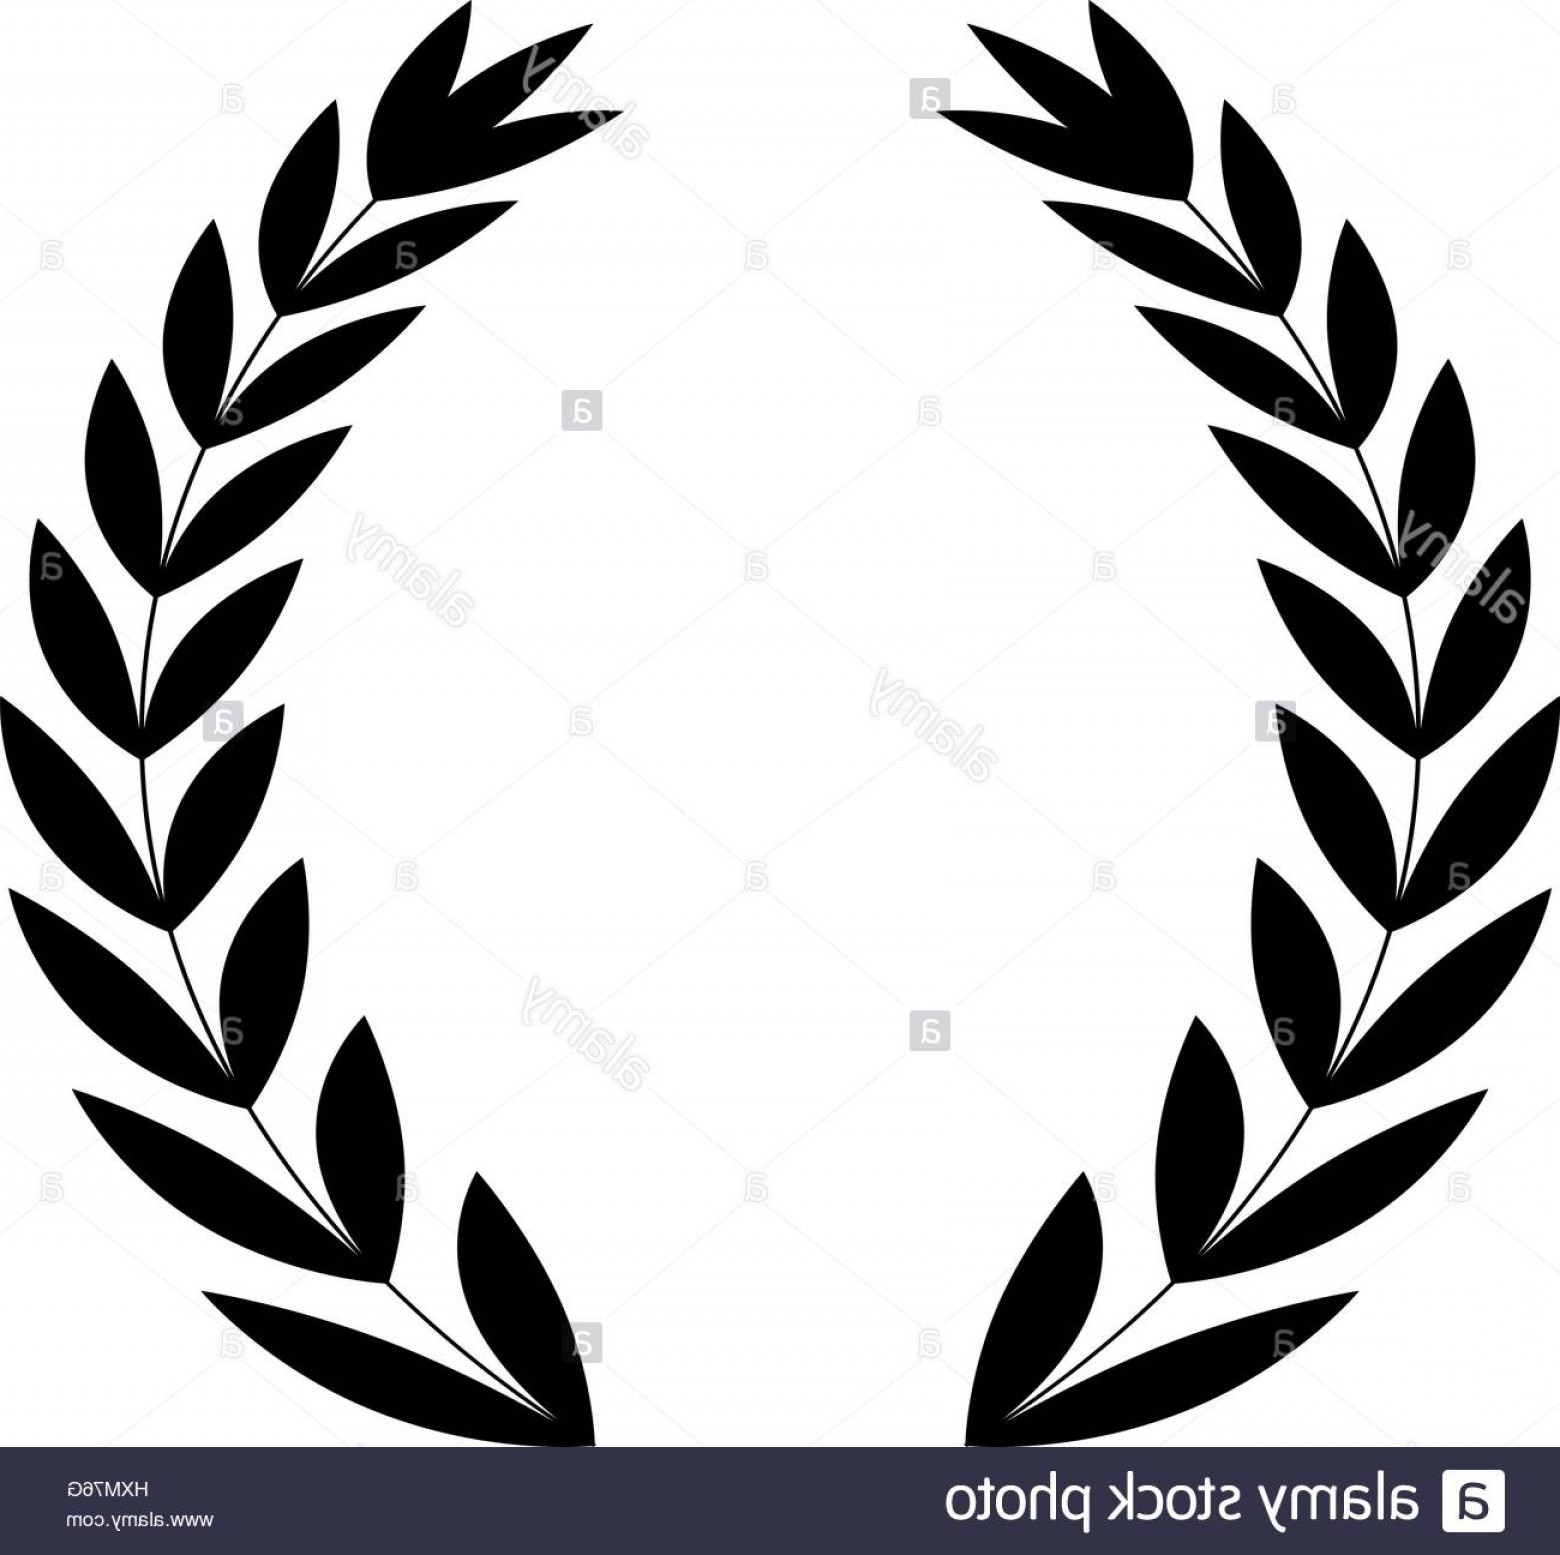 Vector Leaf Graphicd: Stock Photo Wreath Leaves Ornament Icon Icon Vector Illustration Graphic Design